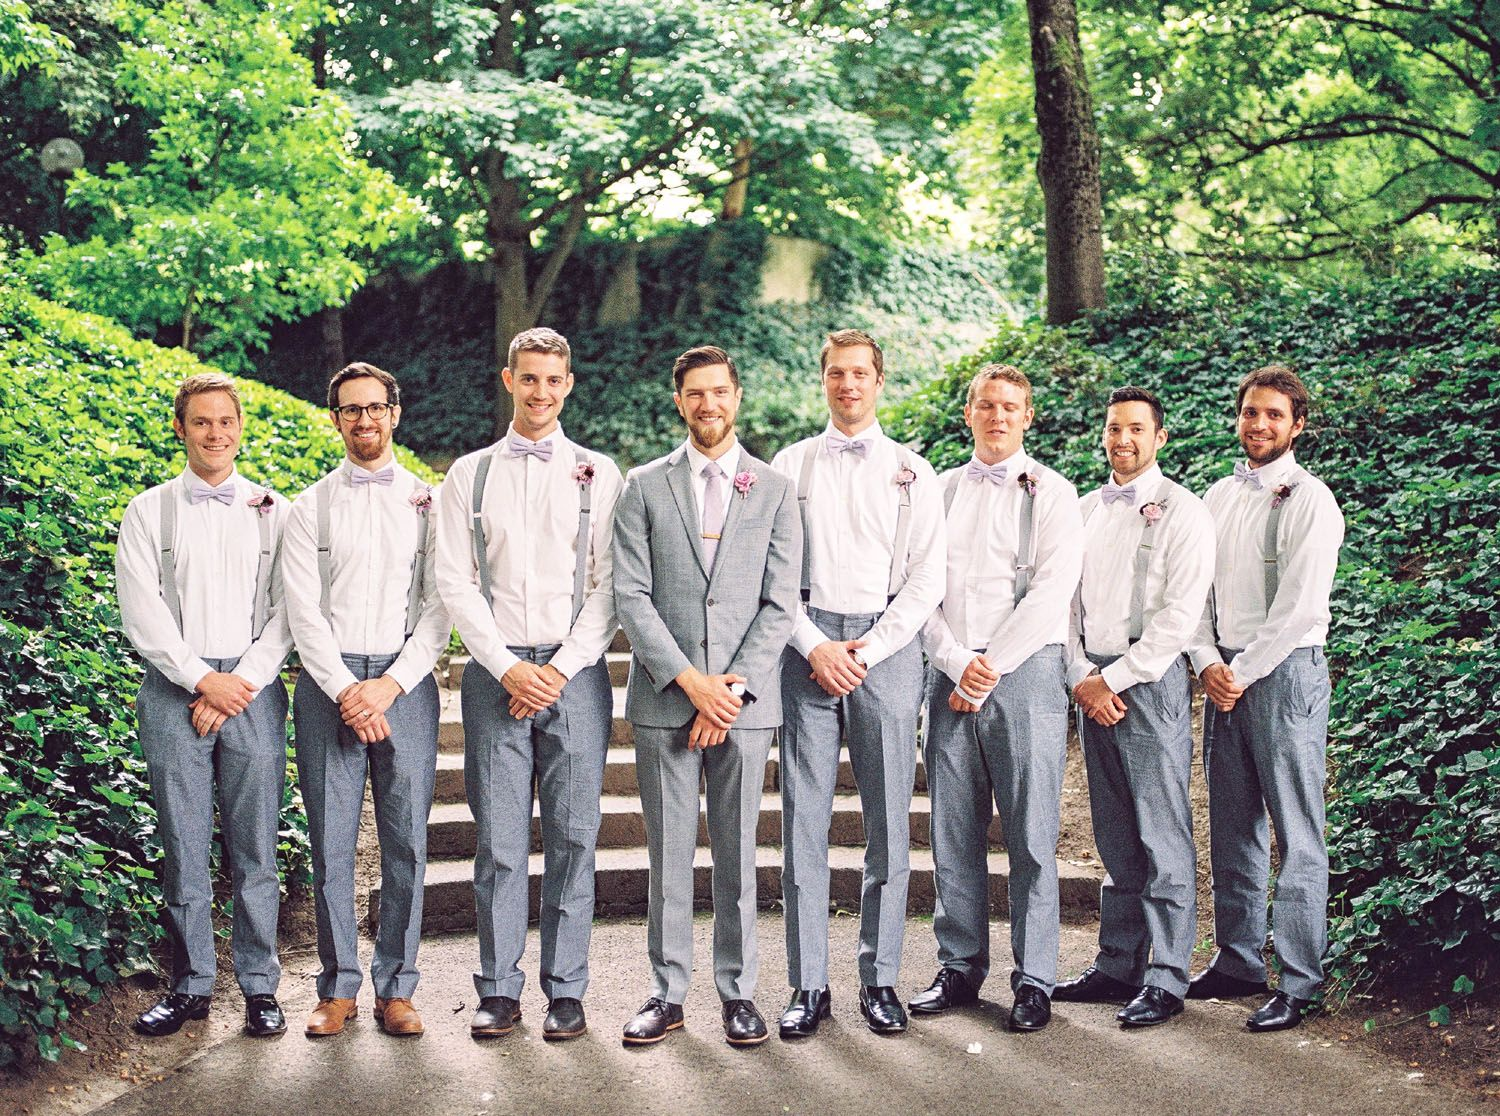 Bridal Bliss Groomsmen Grey Wedding Groomsmen Attire Suspenders Wedding